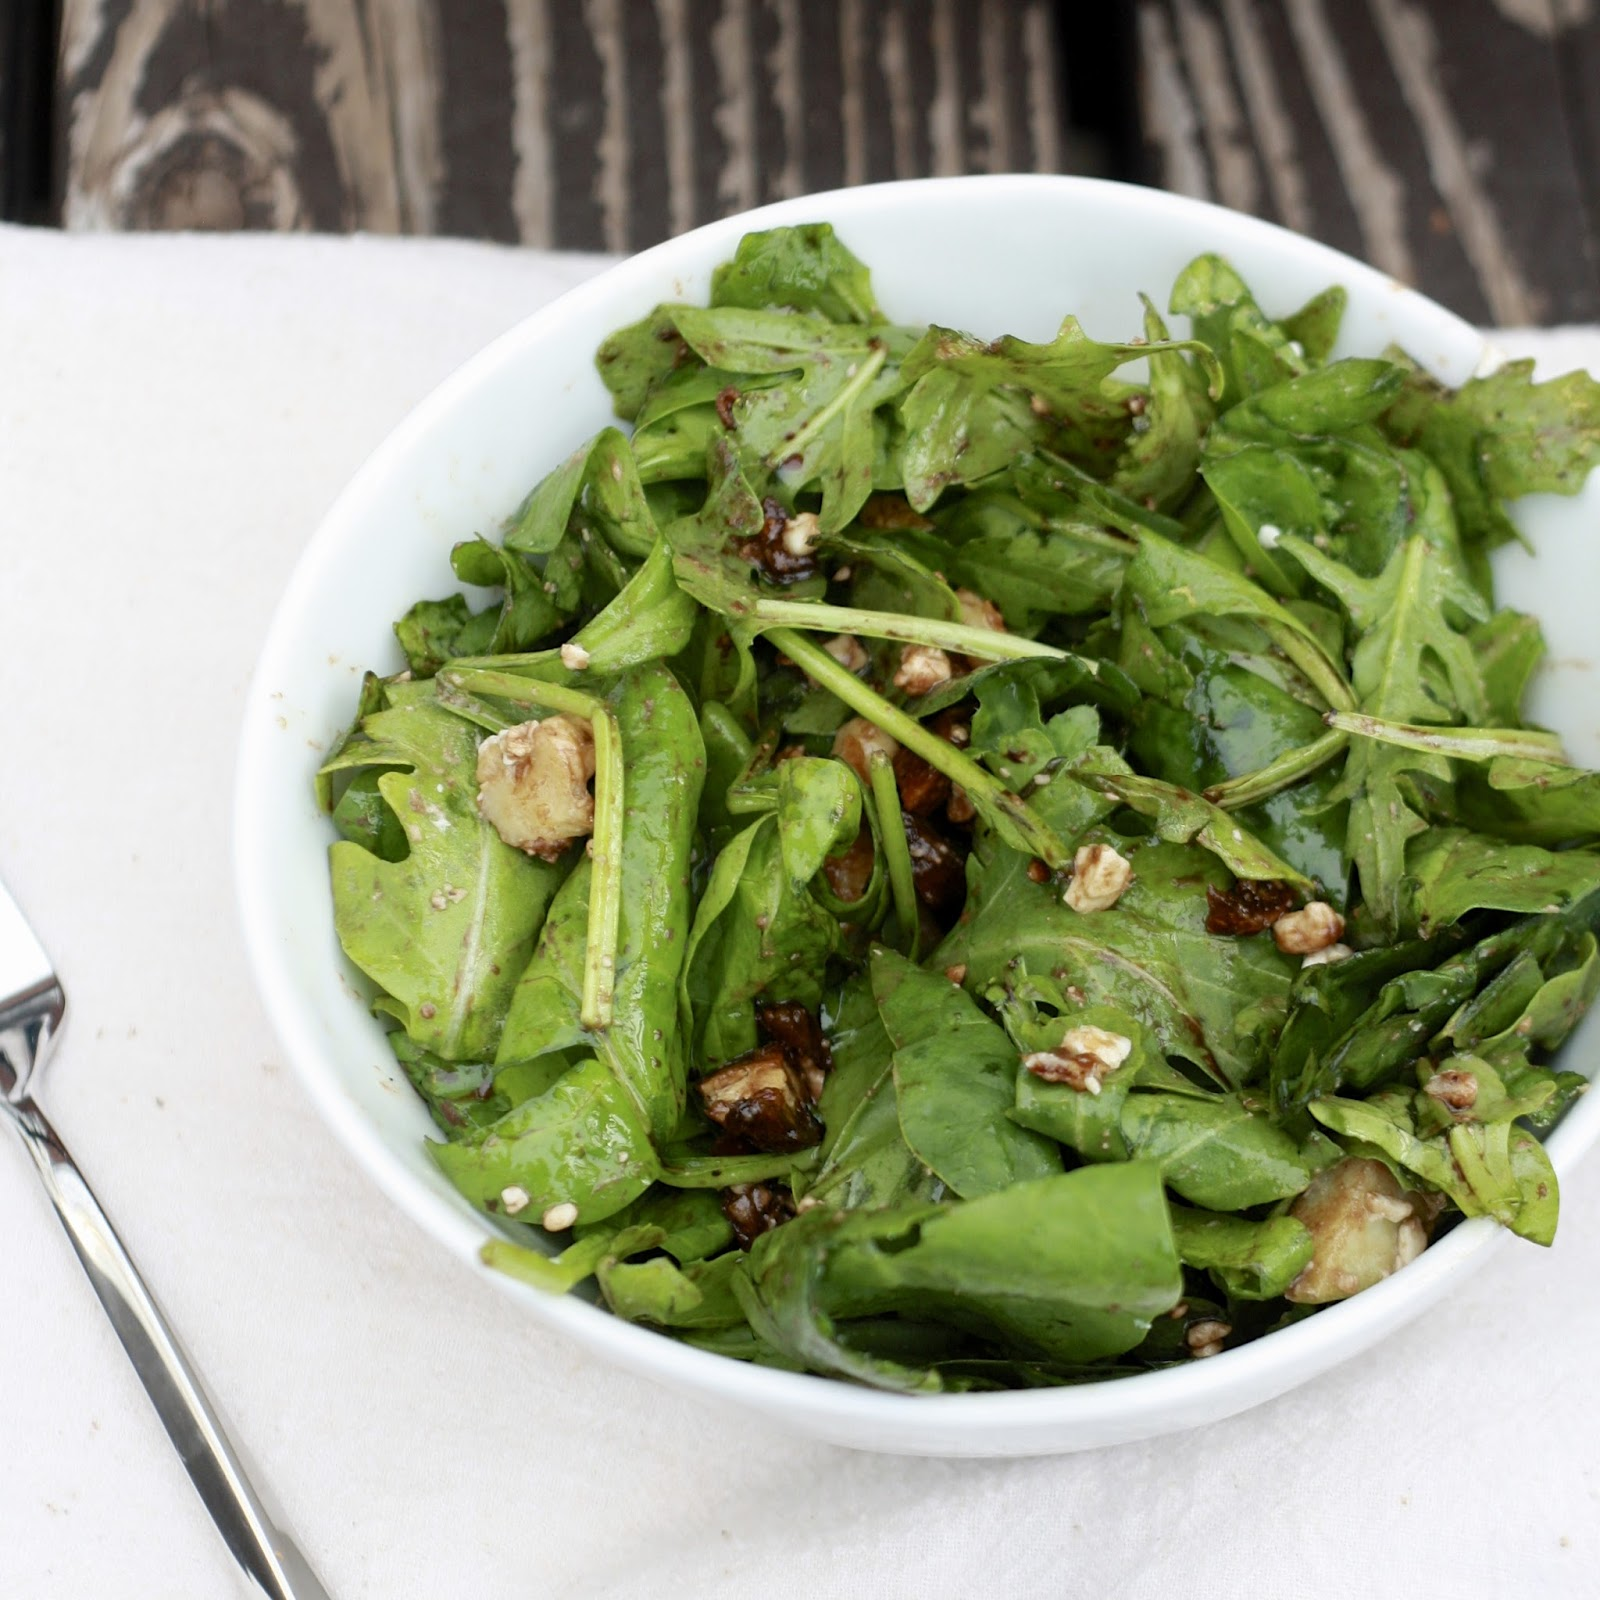 Arugula Salad with Dates, Apples, and Walnuts | The Sweets Life